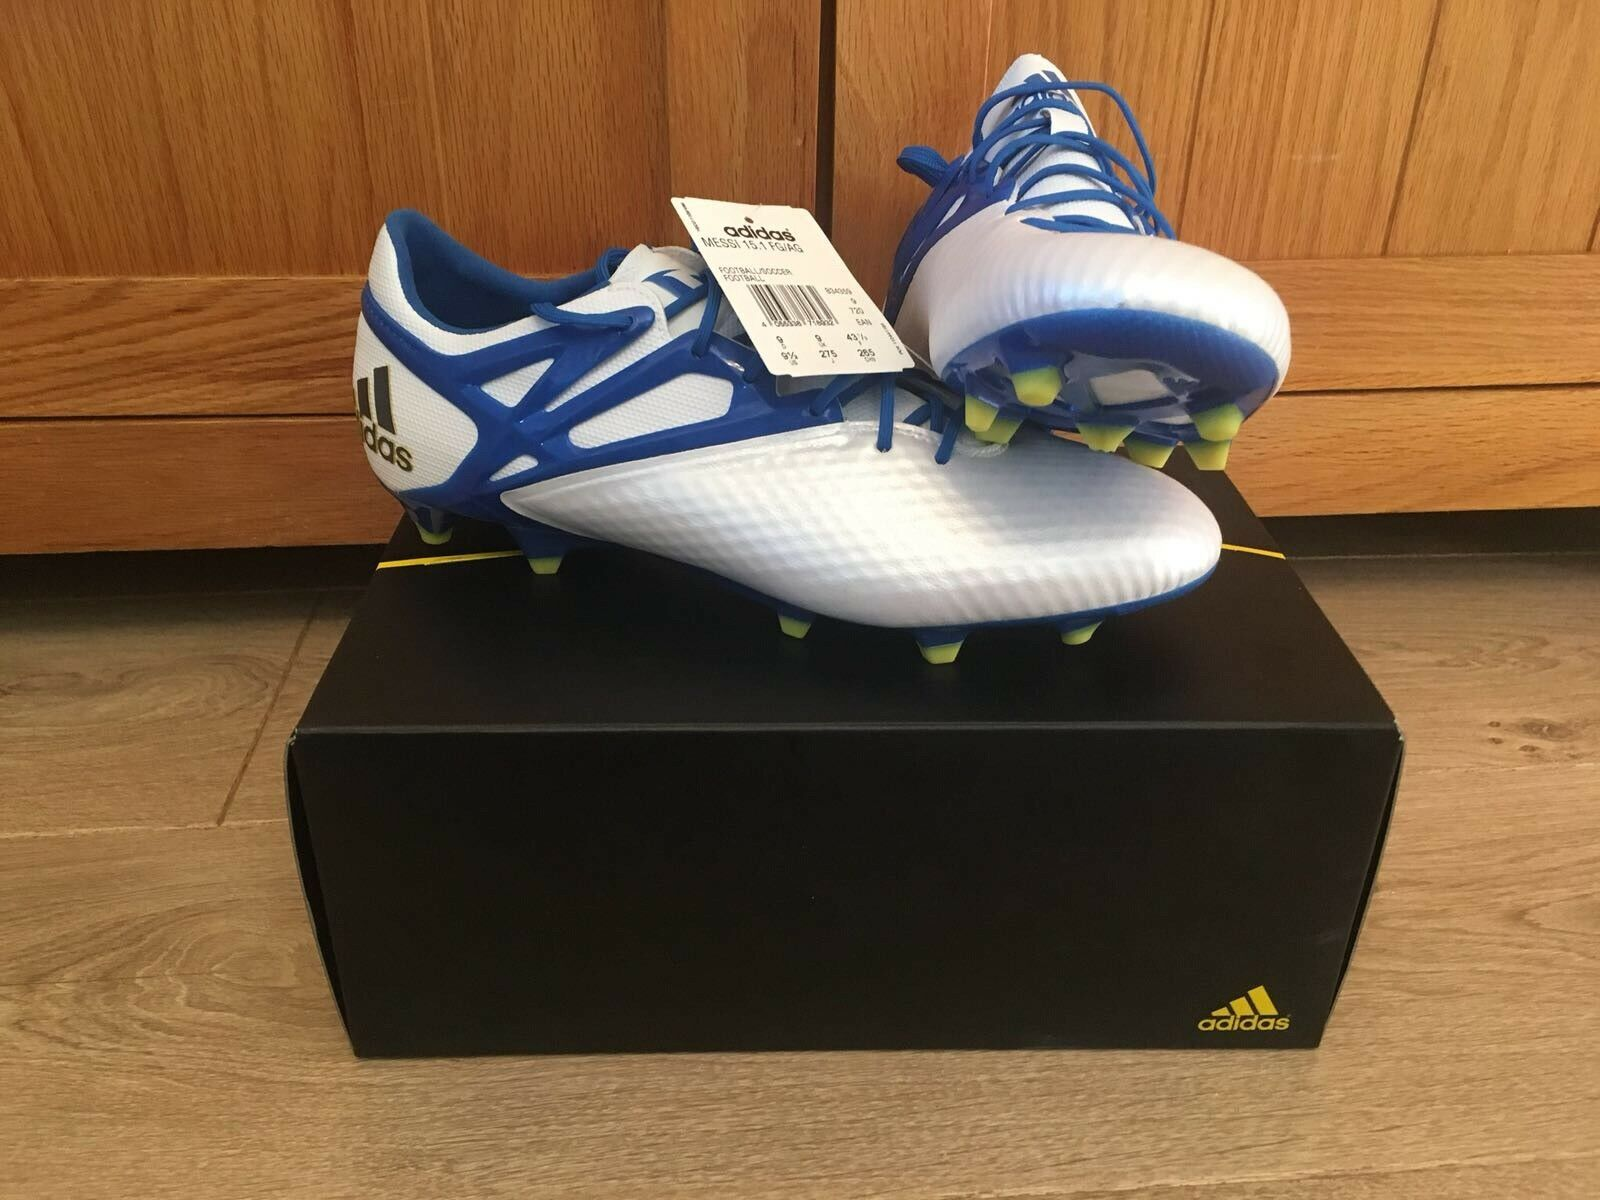 Men's Adidas Messi football boots size 10 New shoes for men and women, limited time discount